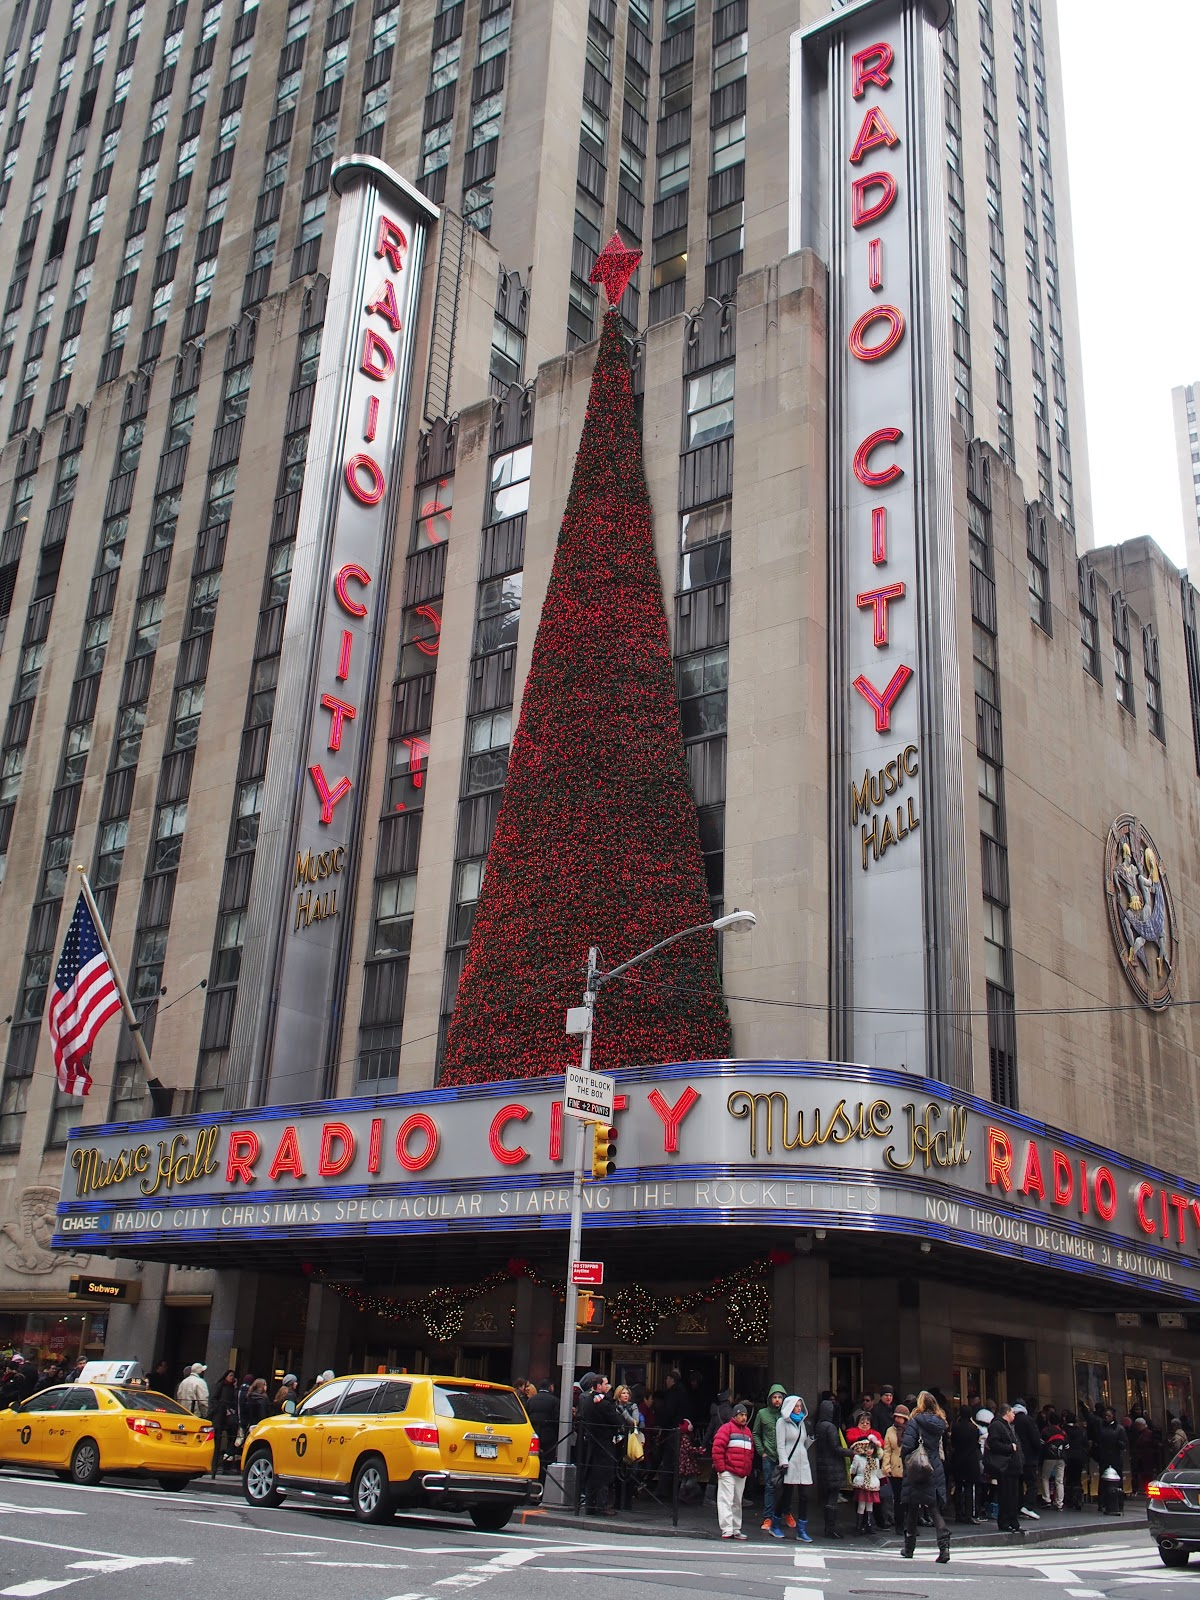 All Decked Out #alldeckedout #radiocity #holidays #besttimeoftheyear #nyc ©2014 Nancy Lundebjerg